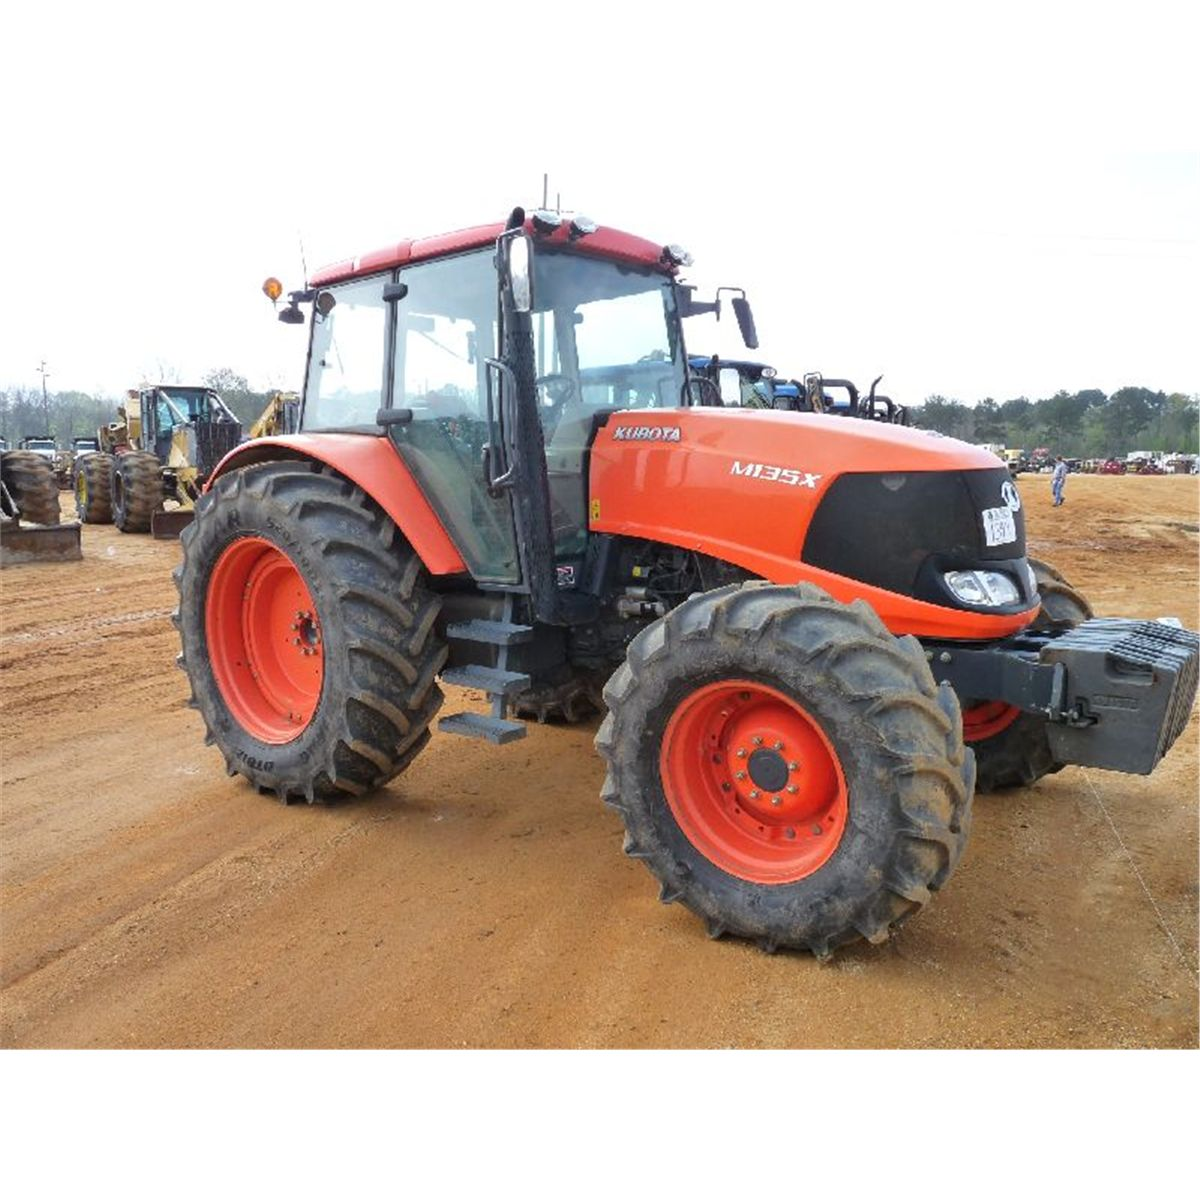 kubota m135x 4x4 farm tractor j m wood auction company inc